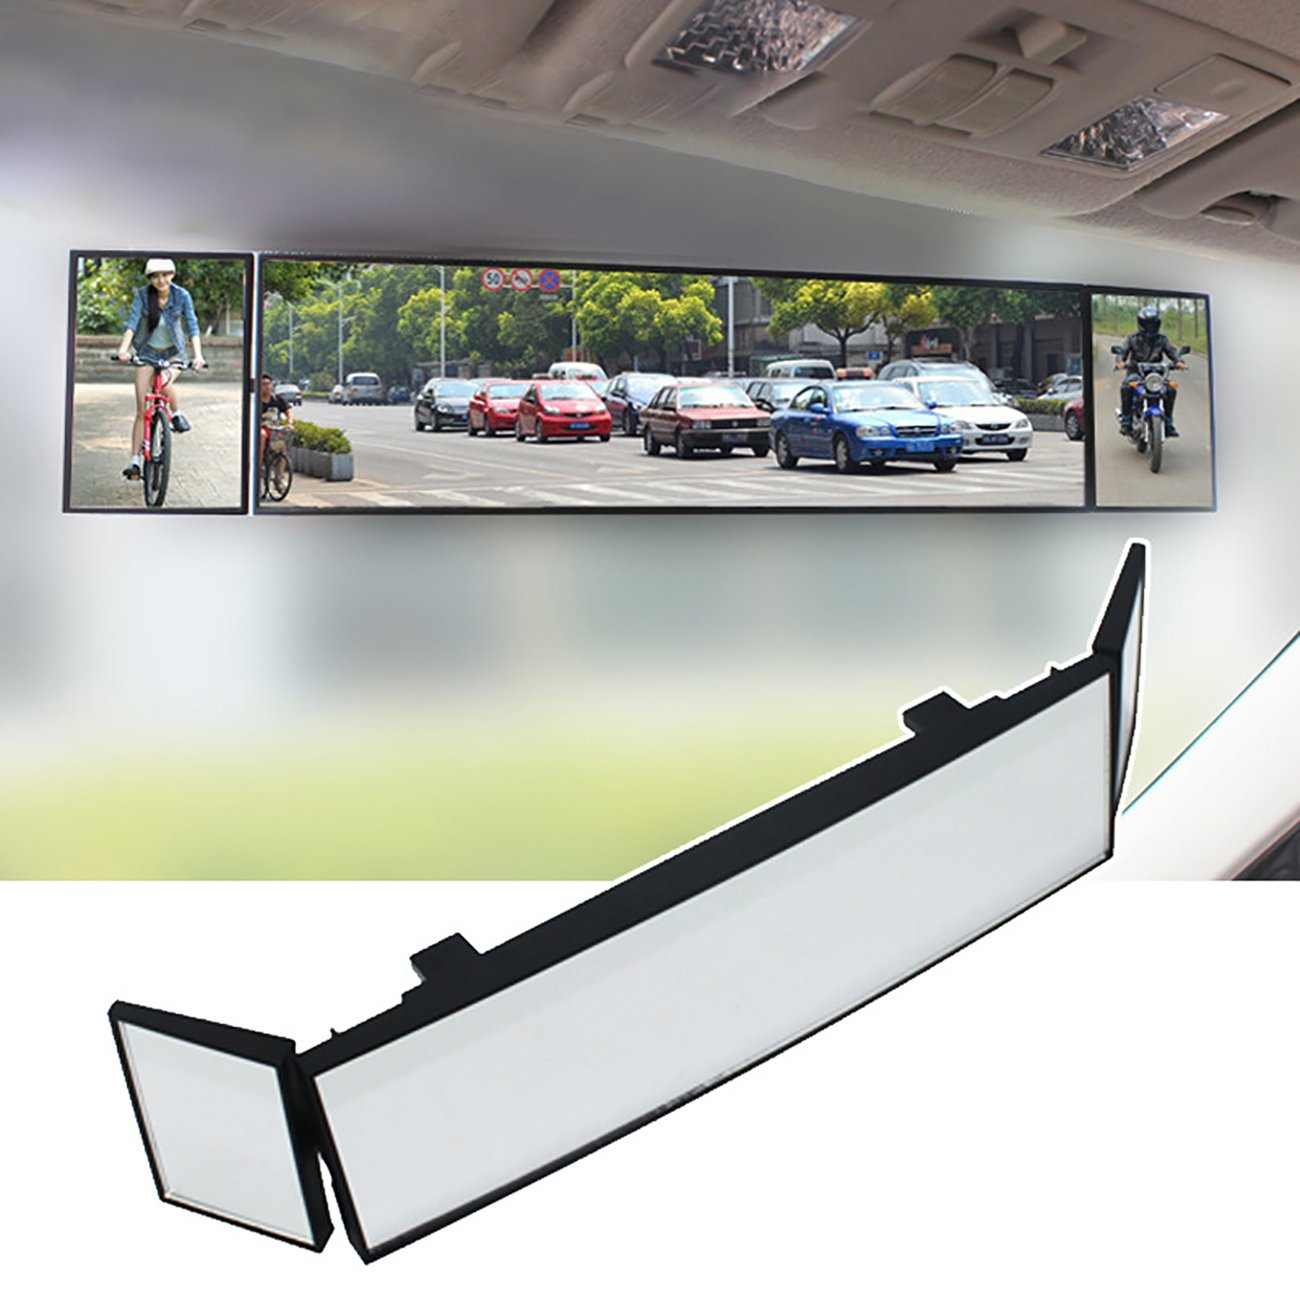 UHeng 15' Universal Car Rear View Mirror Wide Angle Clip-on Curved Mirror